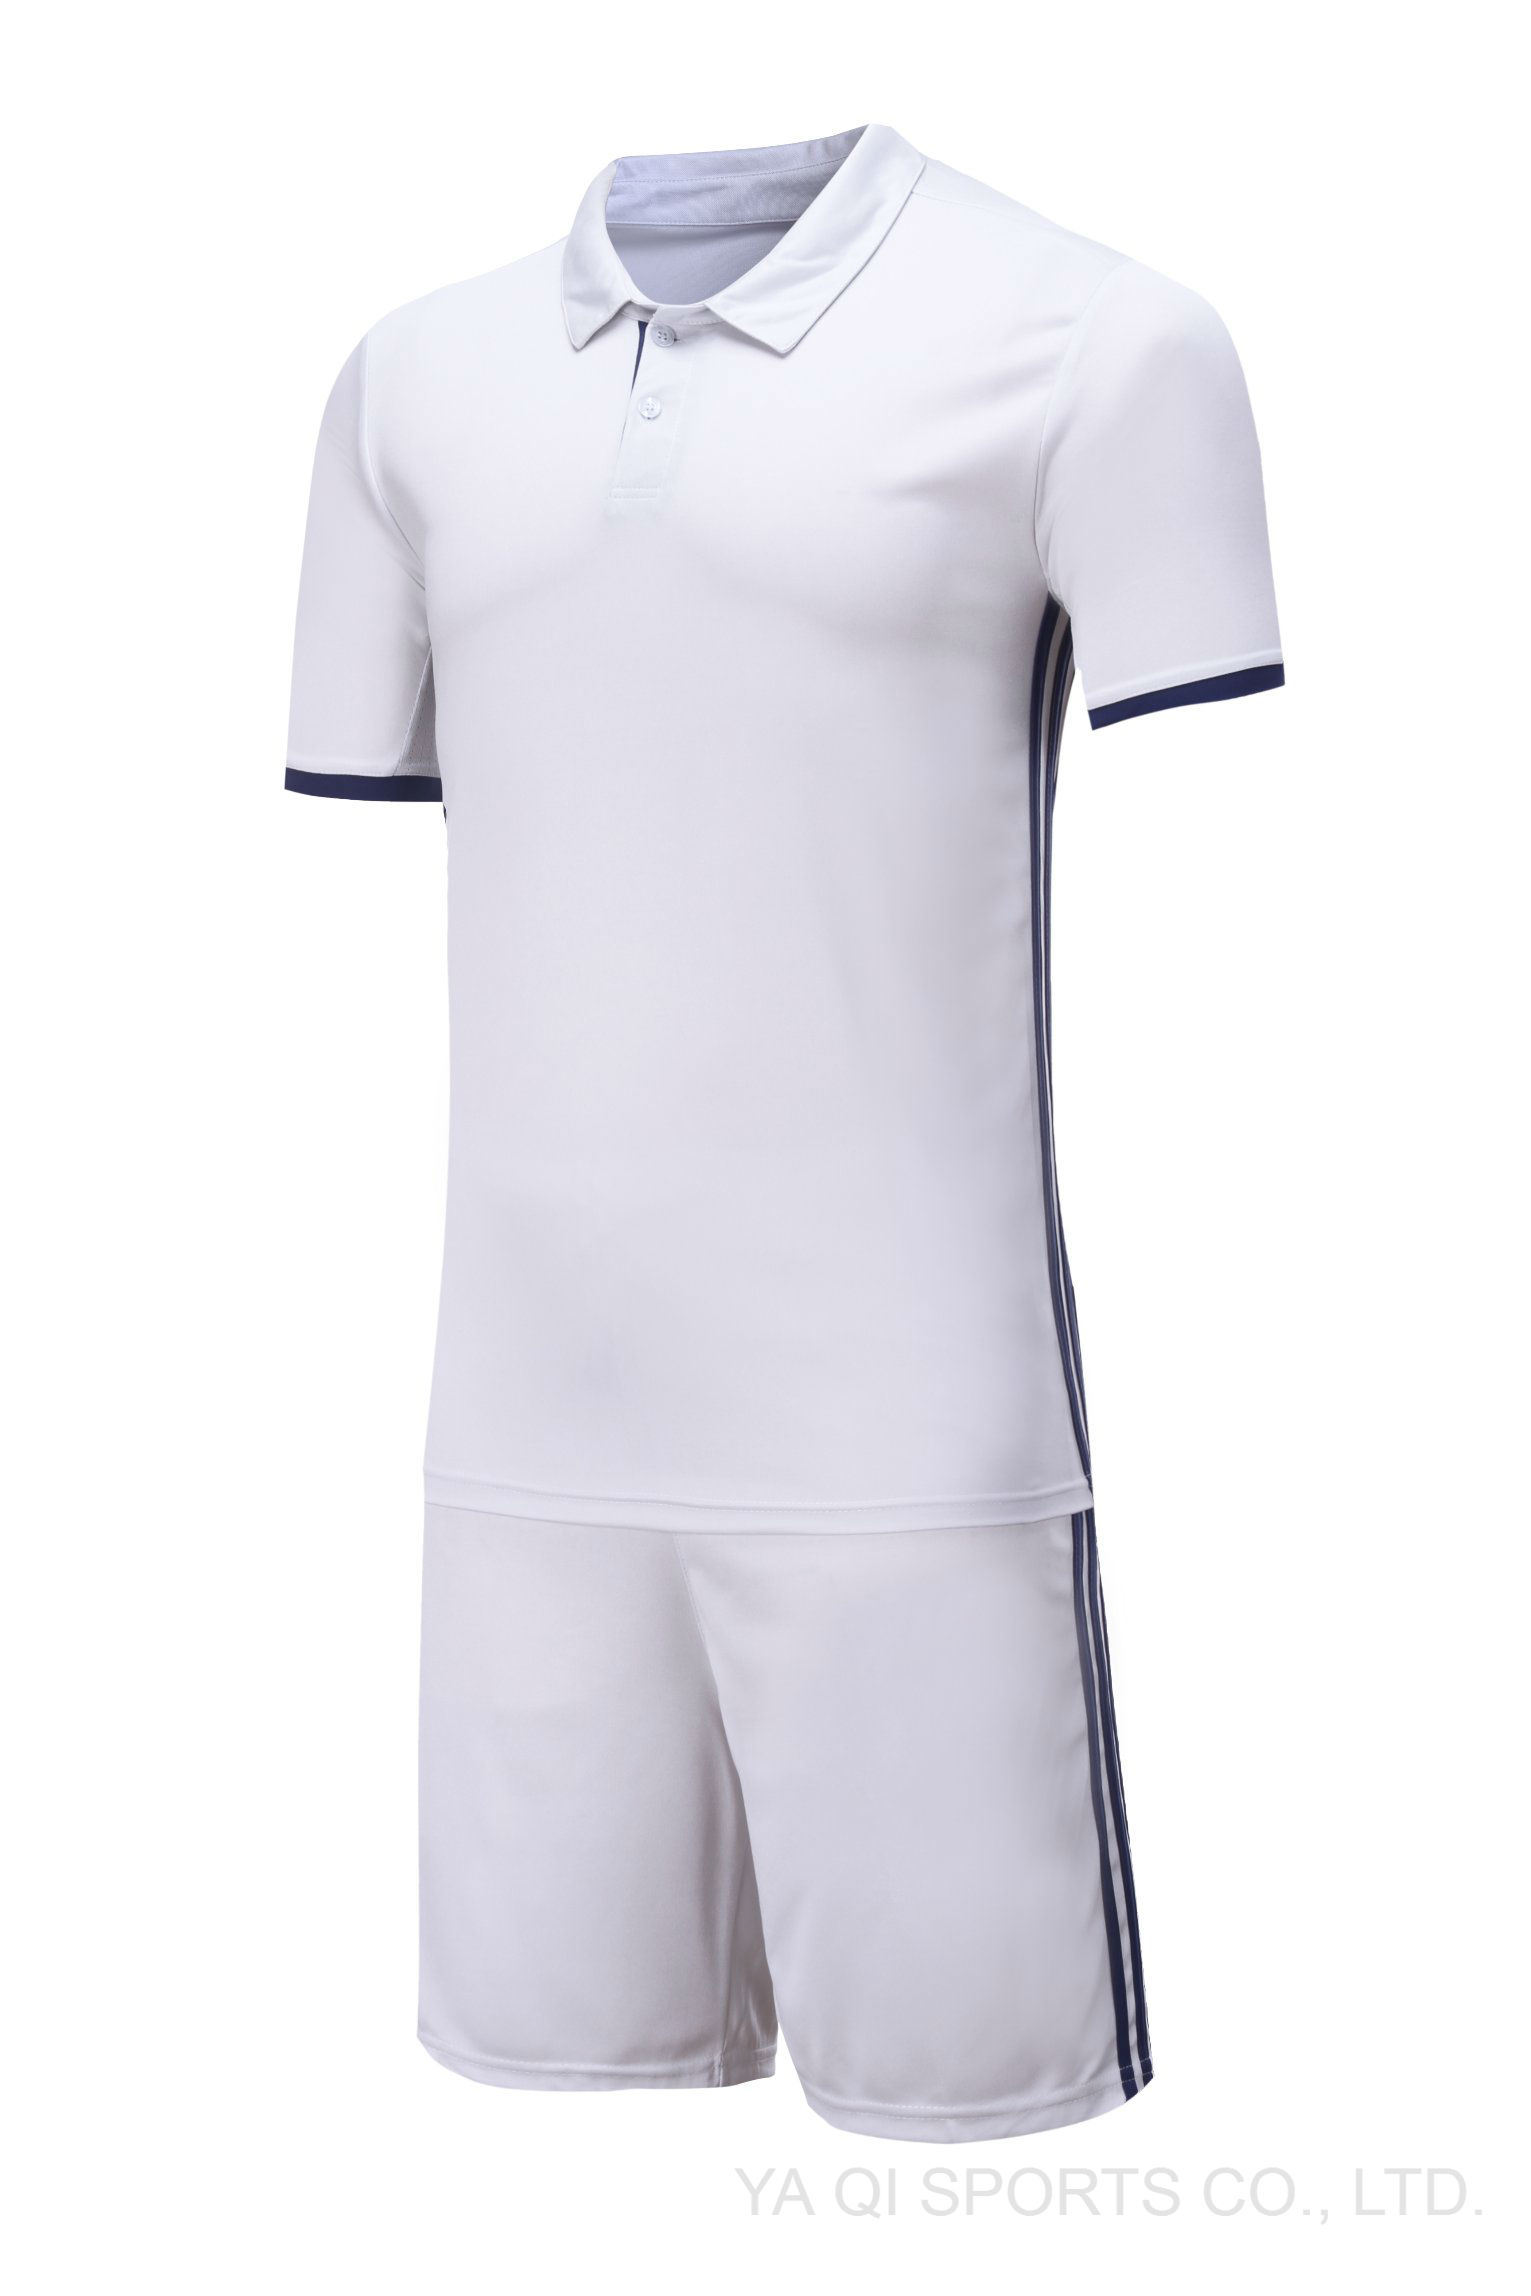 990c1e63d2af5 China Thailand Quality Complete Full Soccer Kits / Football Kits / Kids Soccer  Jersey - China Soccer Uniforms, Football Shirt